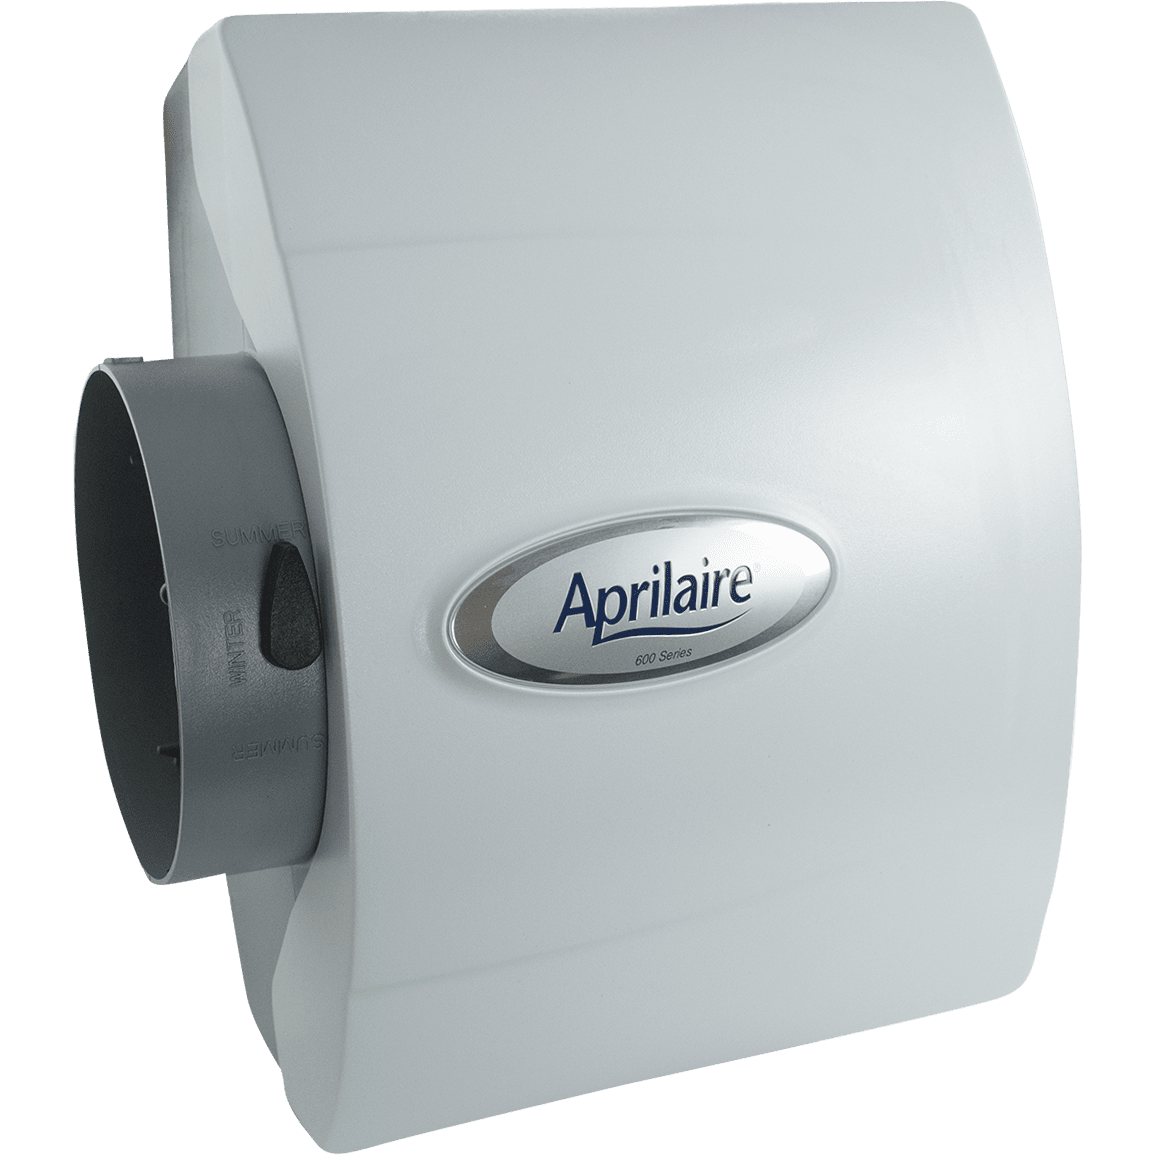 aprilaire model 600 large bypass humidifiers - Whole House Humidifiers